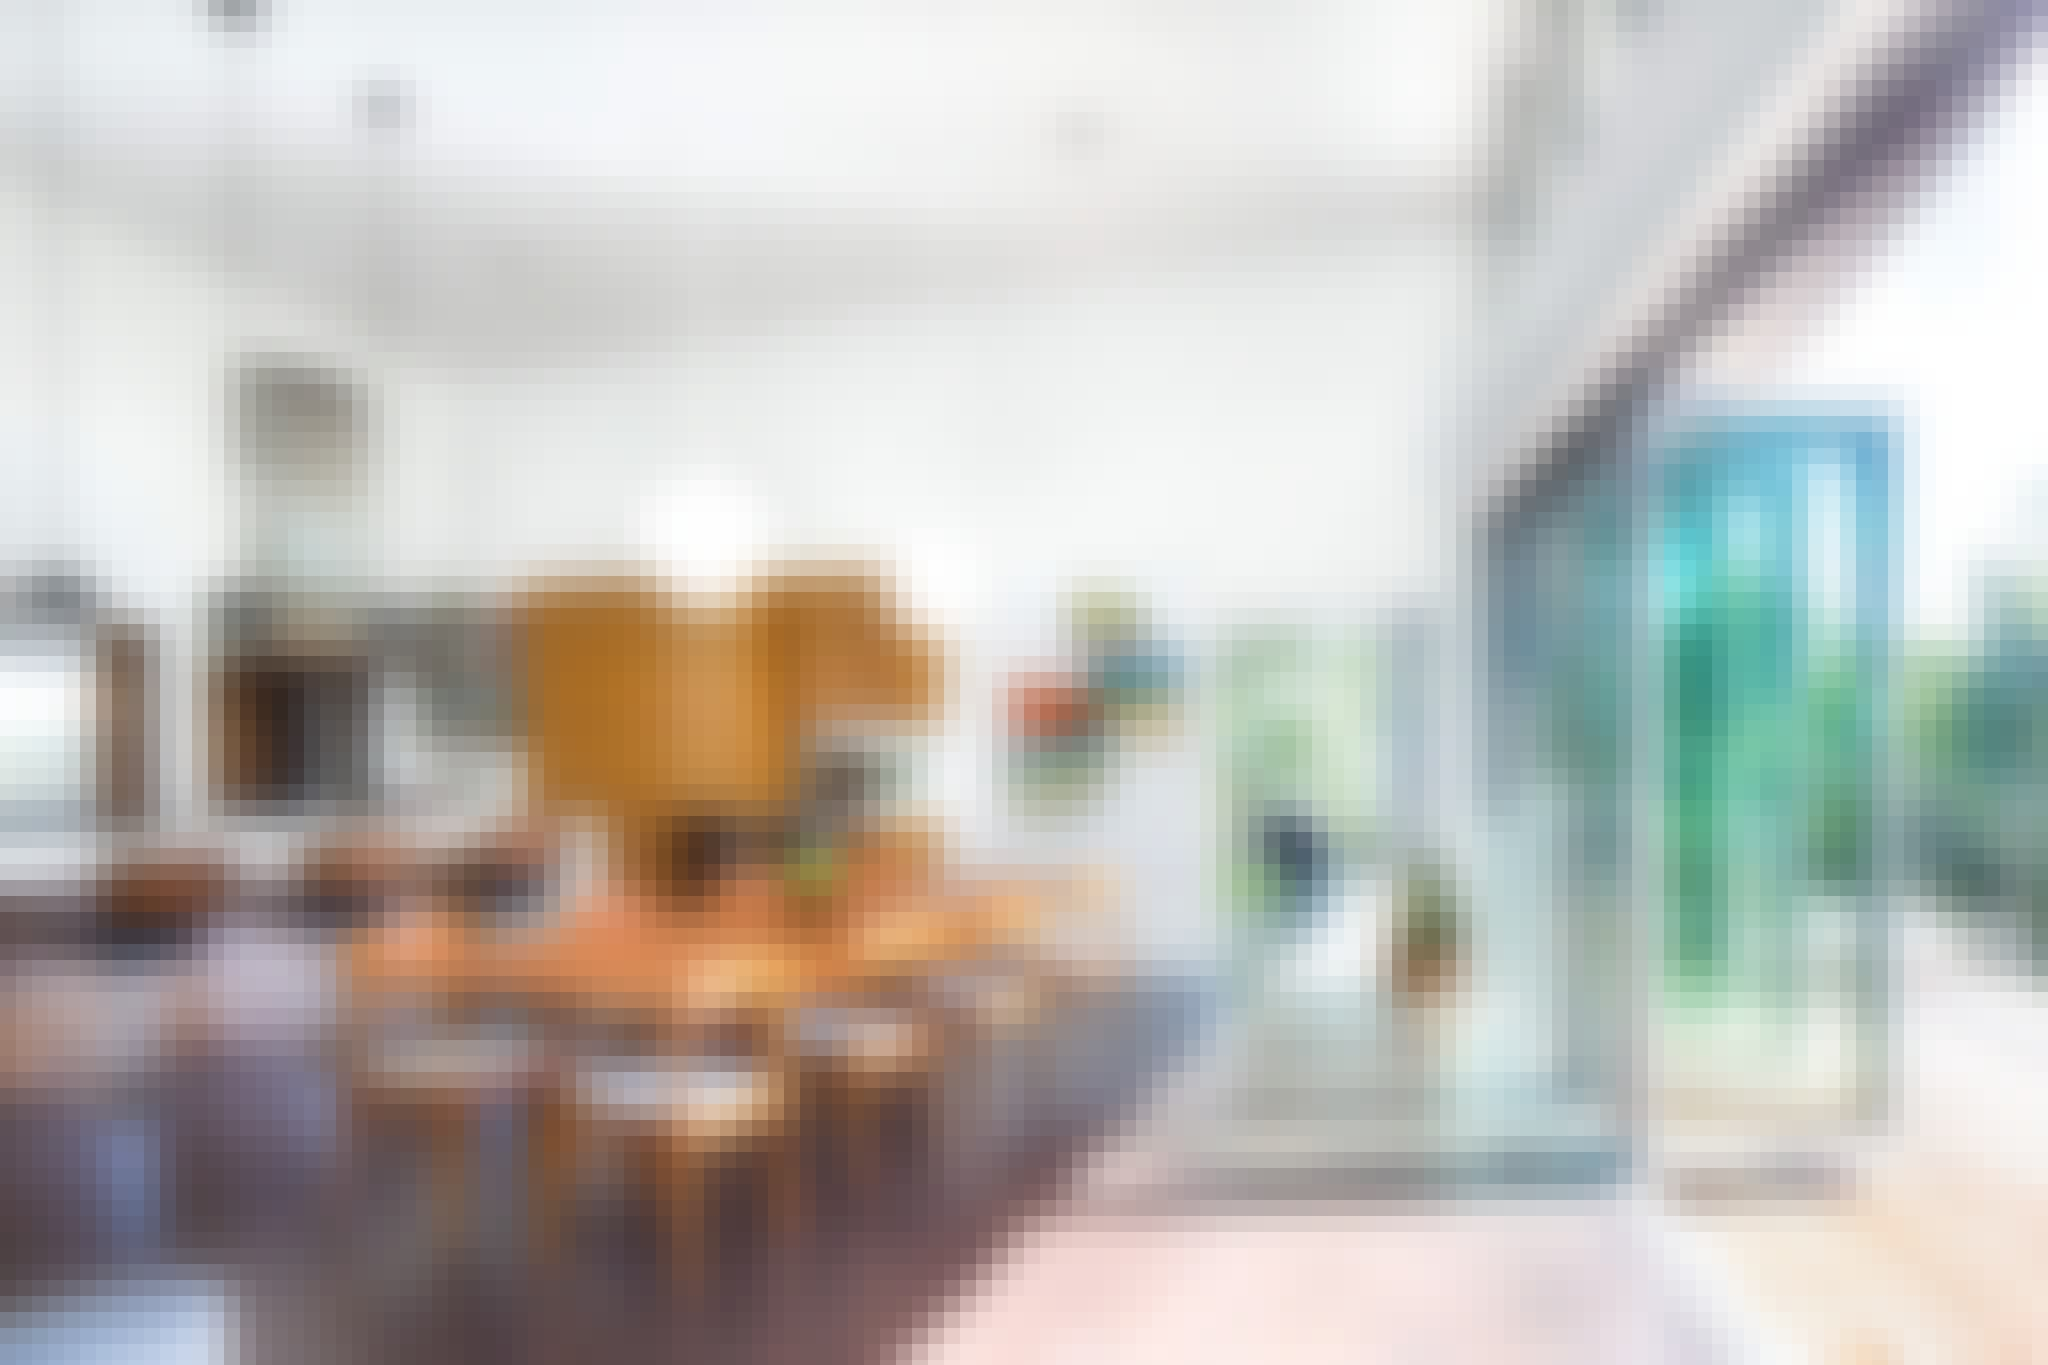 folding glass wall partially open in dining room with hillside view